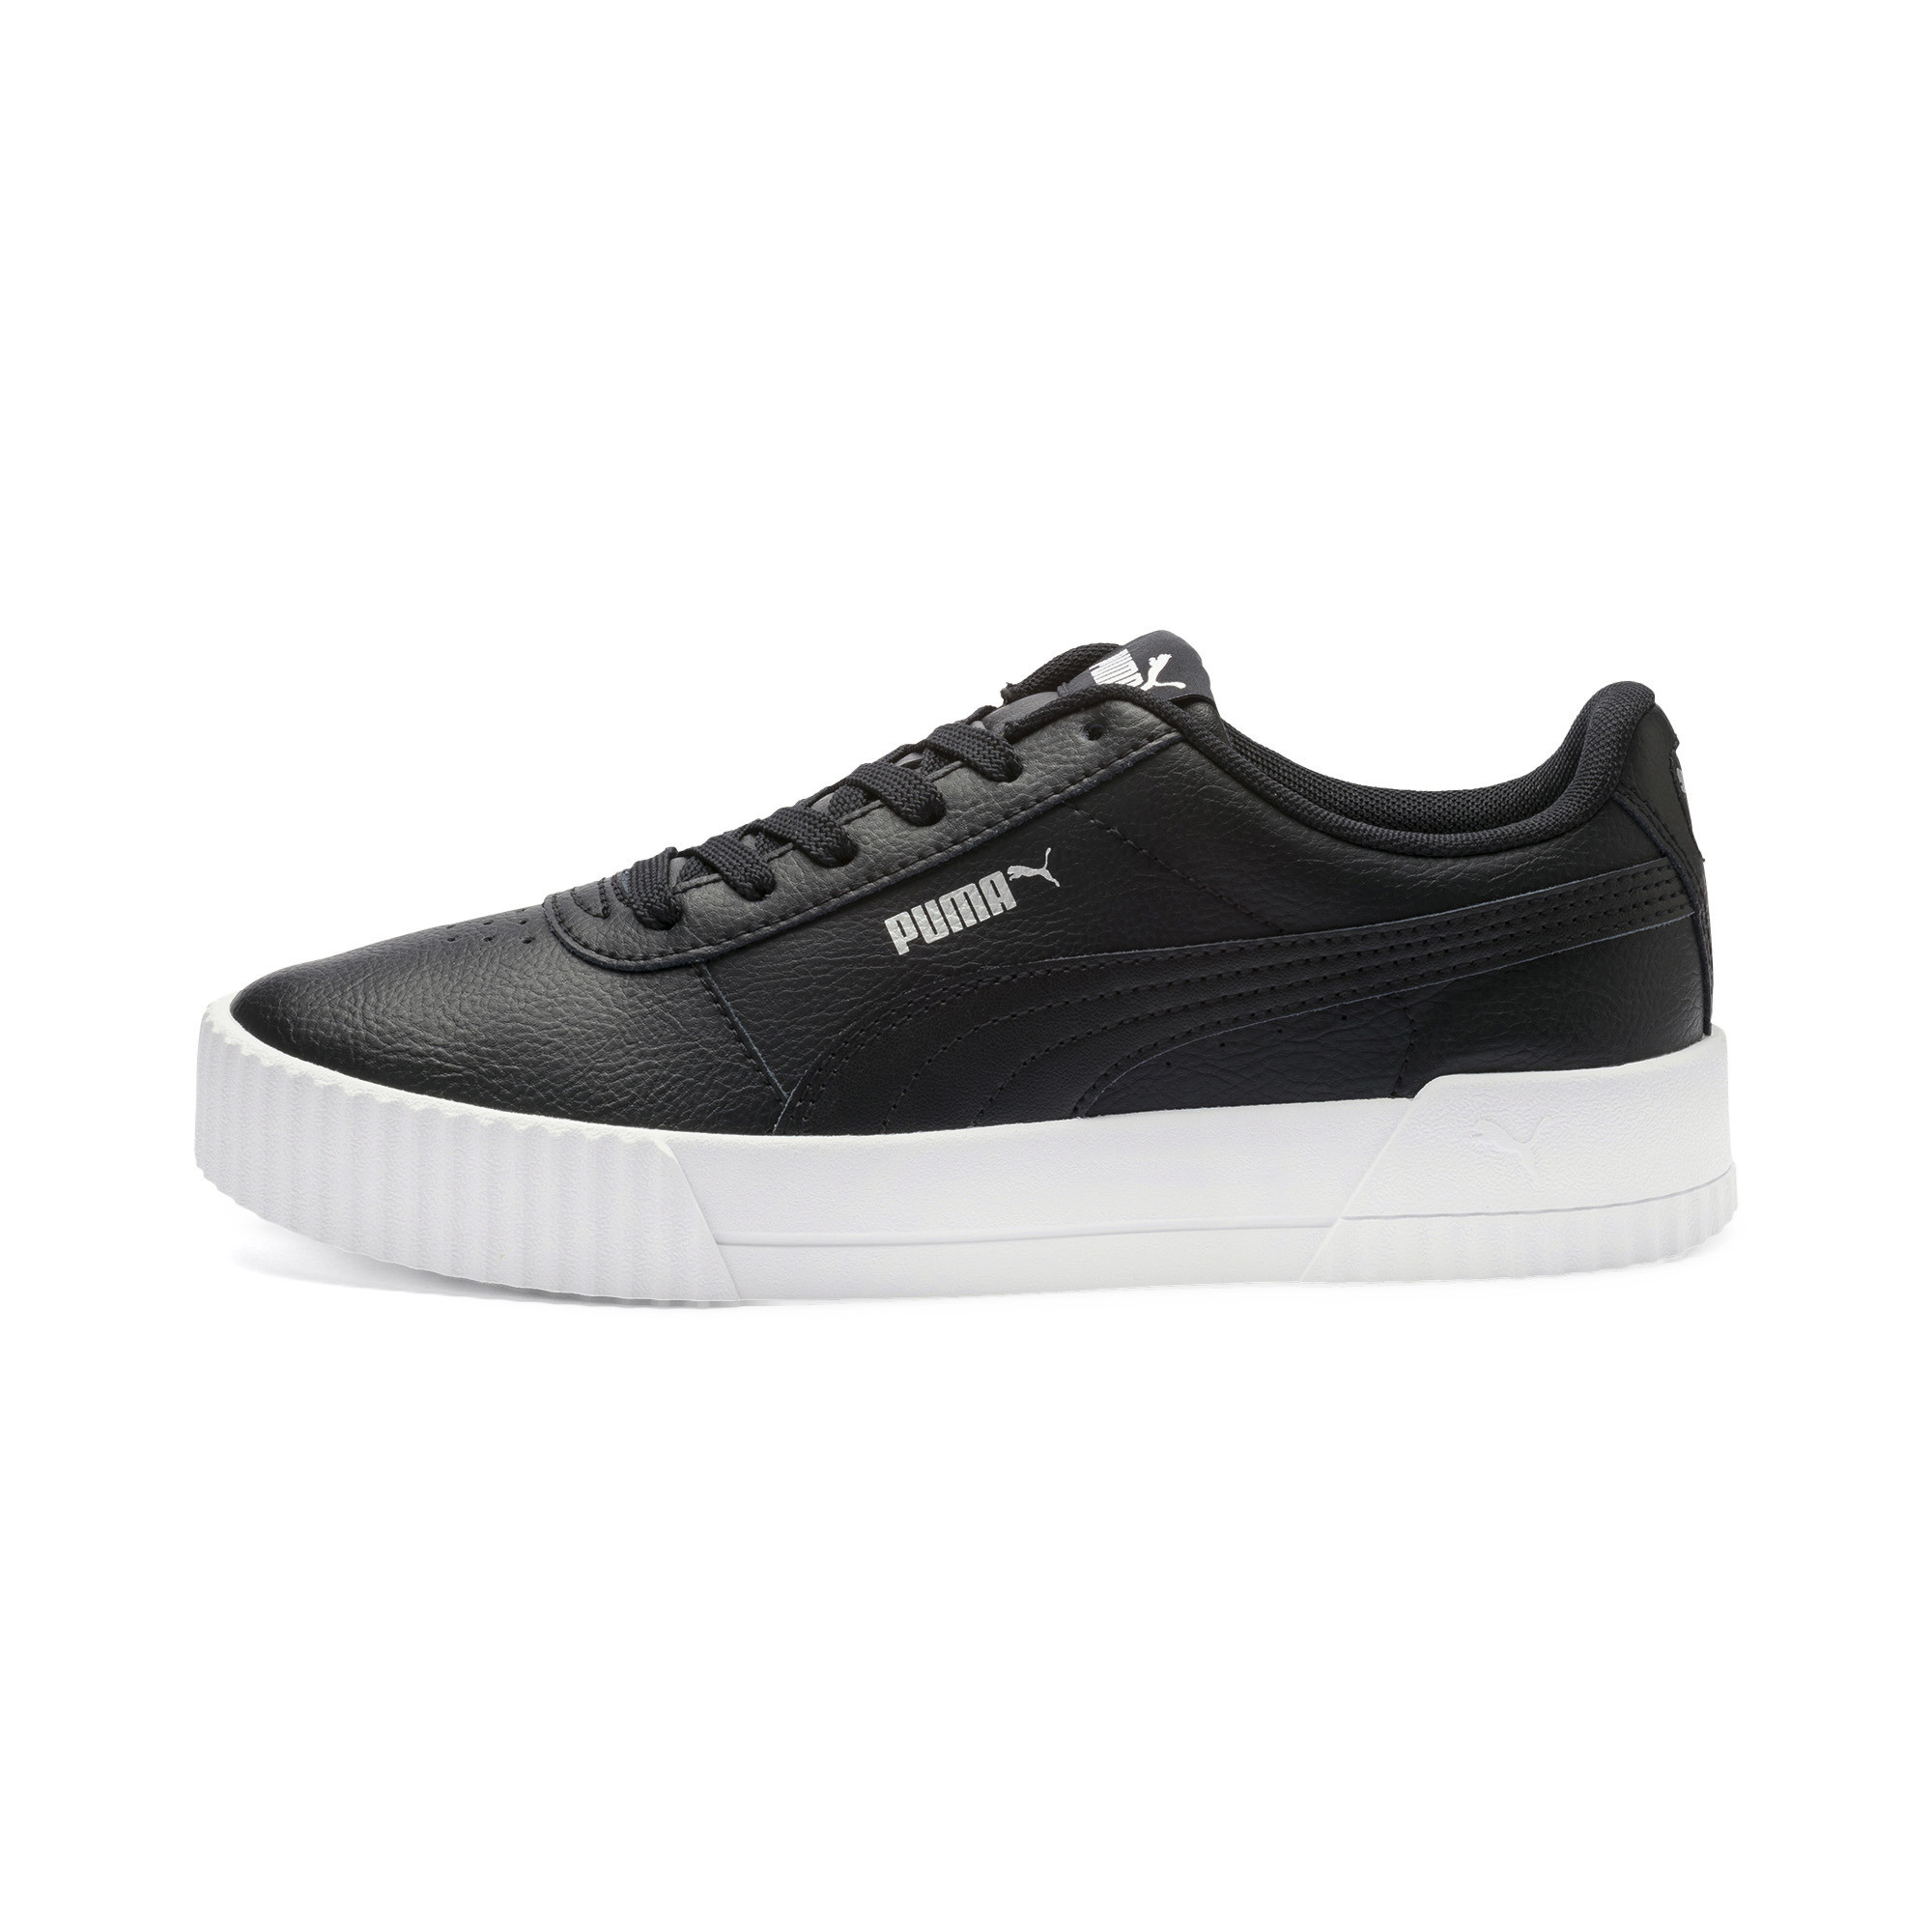 PUMA-Carina-Leather-Women-s-Sneakers-Women-Shoe-Basics thumbnail 10